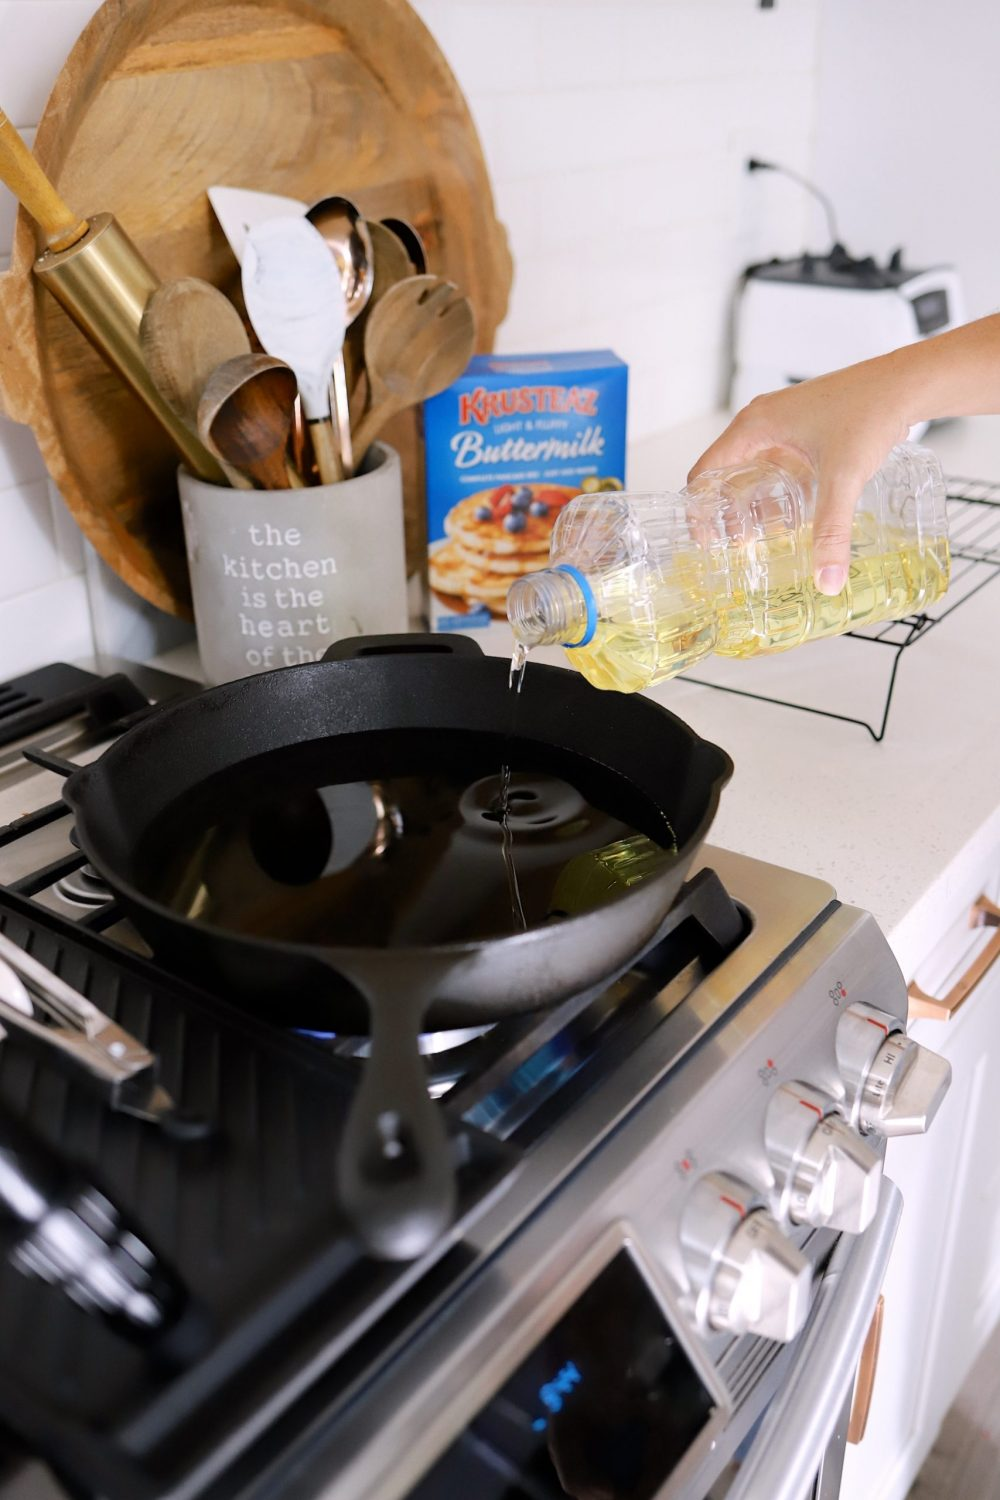 How to Make Yummy Funnel Cake From Pancake Mix at Home   Pancake Mix Funnel Cake, by popular Florida lifestyle blog, Fresh Mommy Blog: image of a woman pouring oil into a skillet.